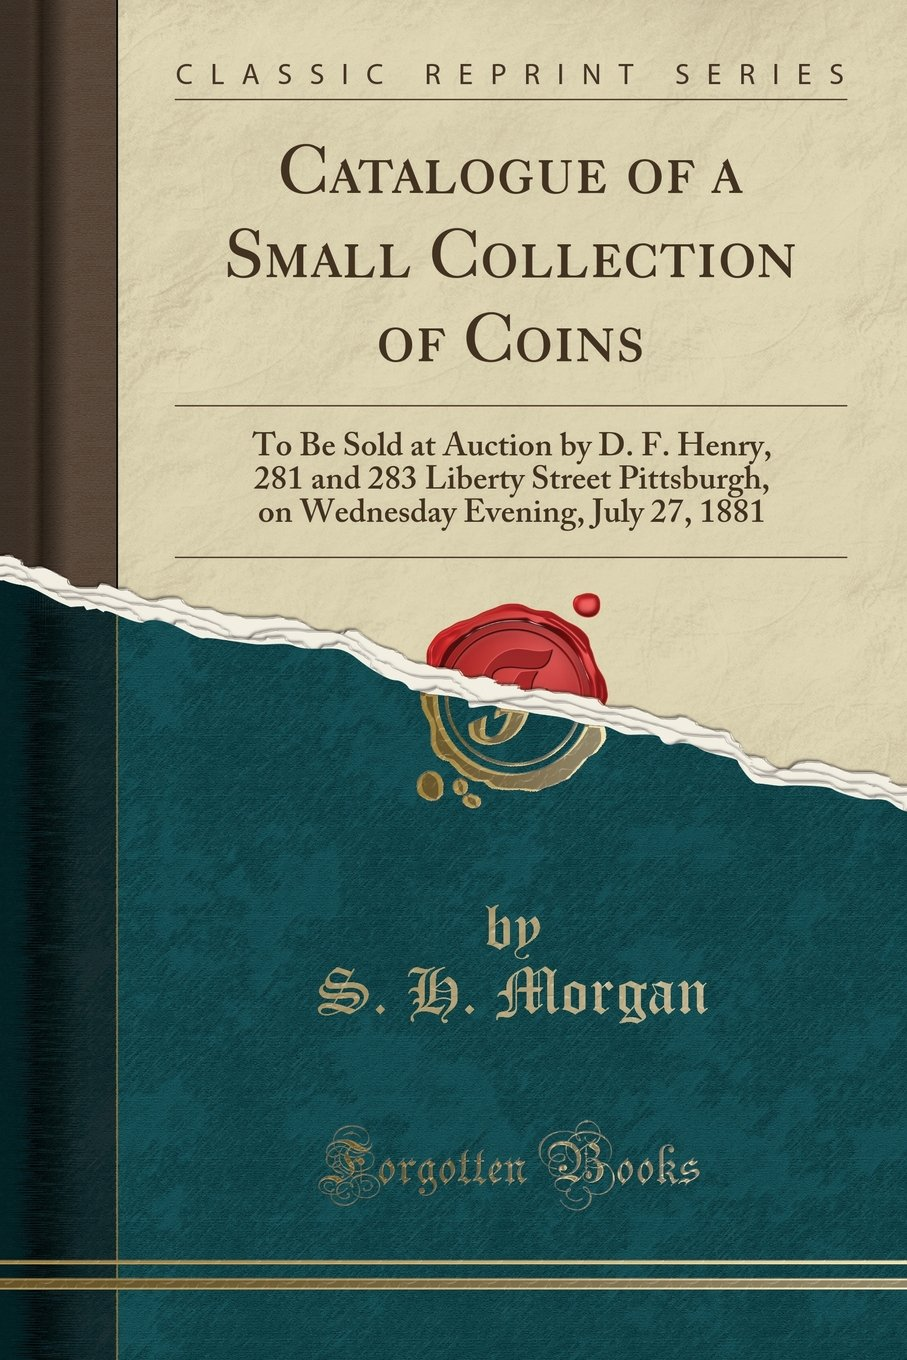 Download Catalogue of a Small Collection of Coins: To Be Sold at Auction by D. F. Henry, 281 and 283 Liberty Street Pittsburgh, on Wednesday Evening, July 27, 1881 (Classic Reprint) PDF